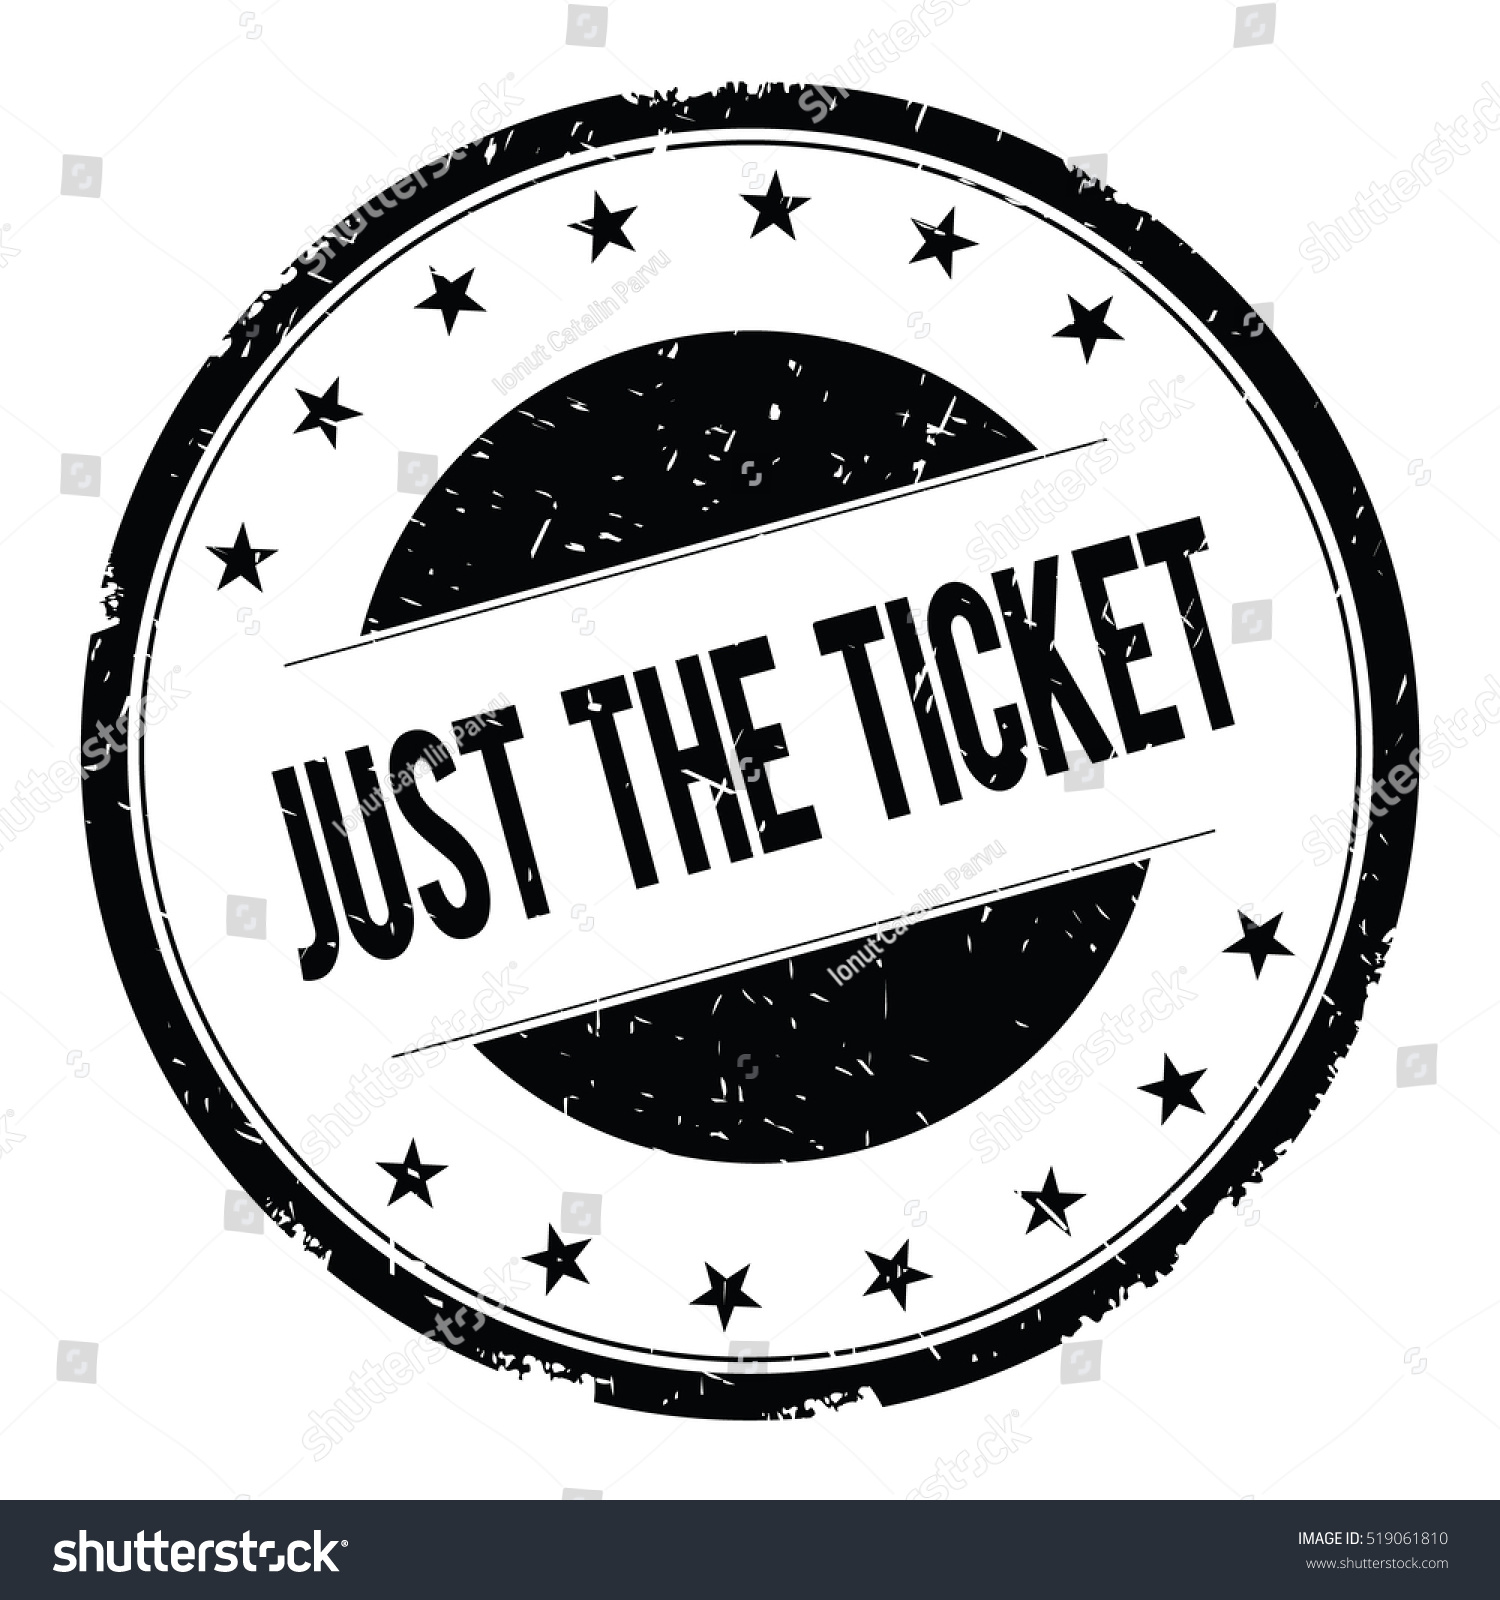 just ticket stamp sign text word stock illustration 519061810 just the ticket stamp sign text word logo black